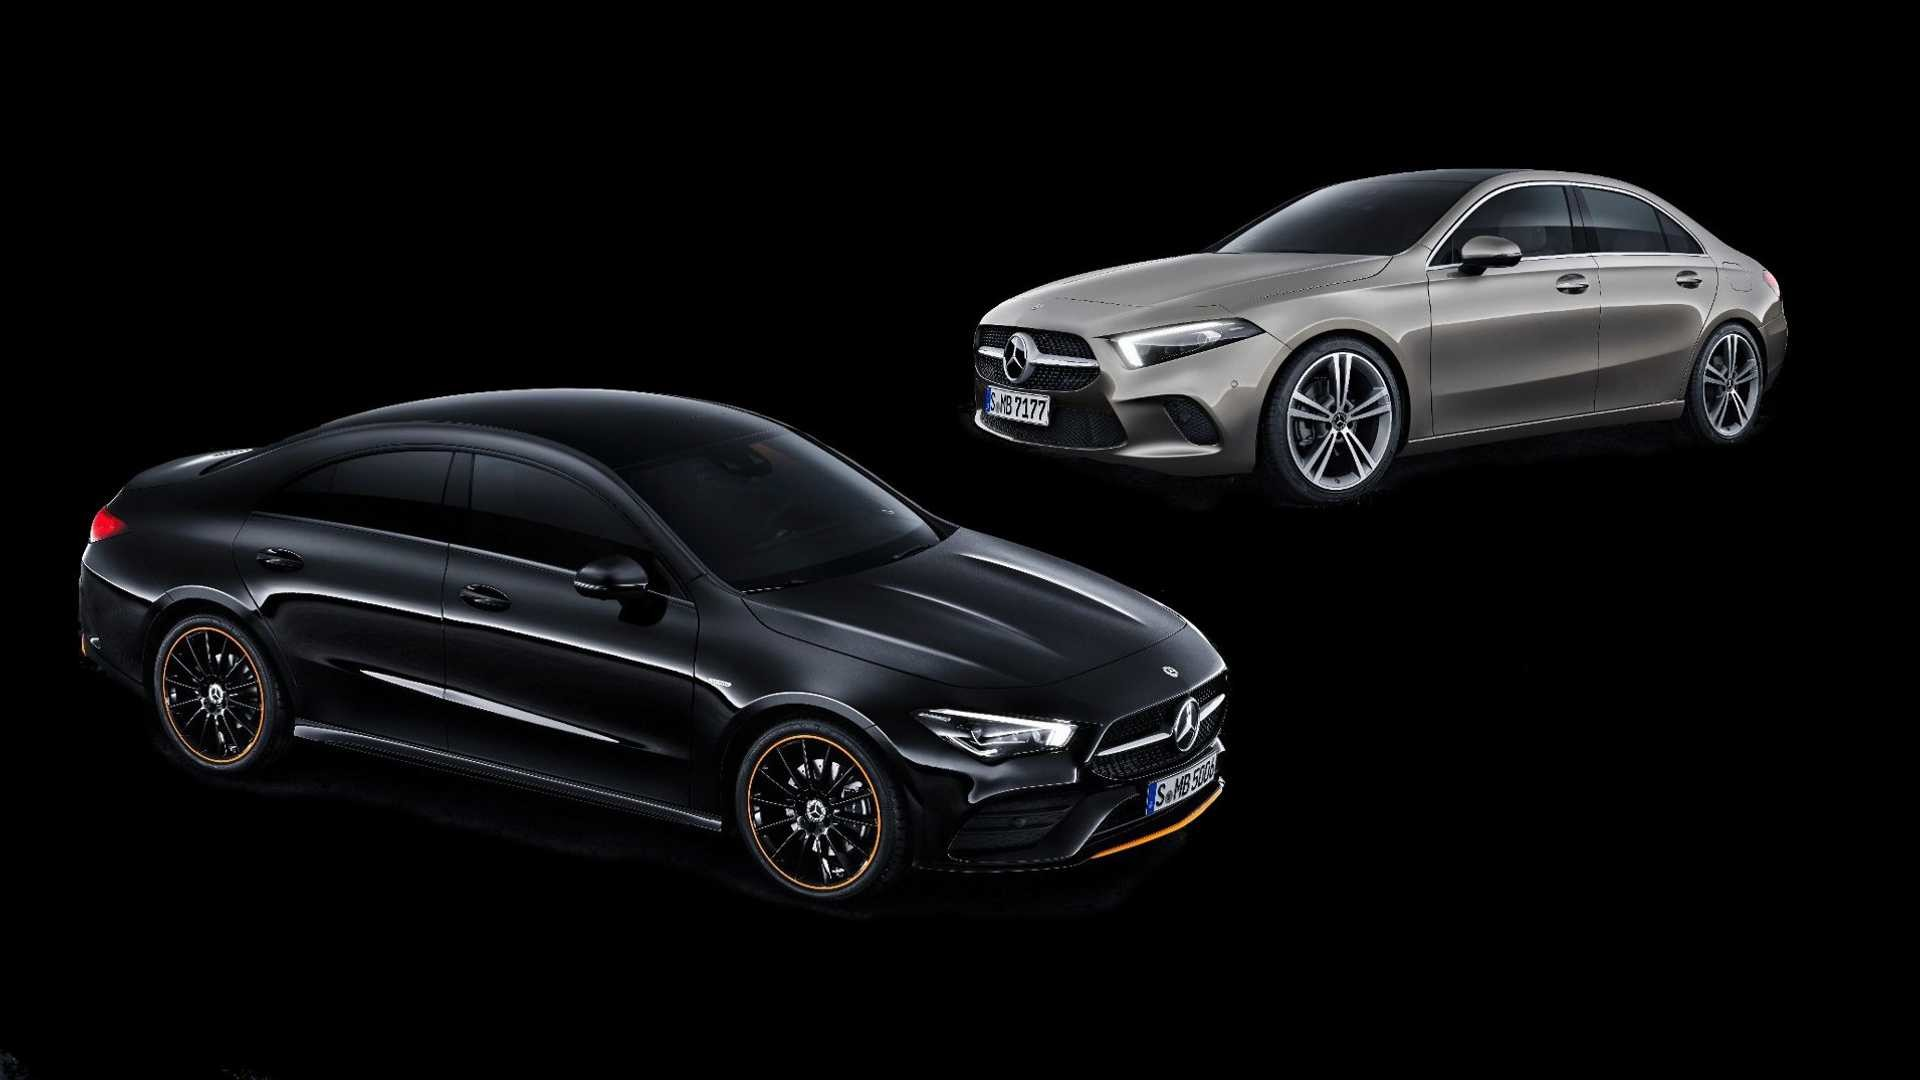 1920x1080 Mercedes Benz A Class Sedan Vs Cla See The Changes